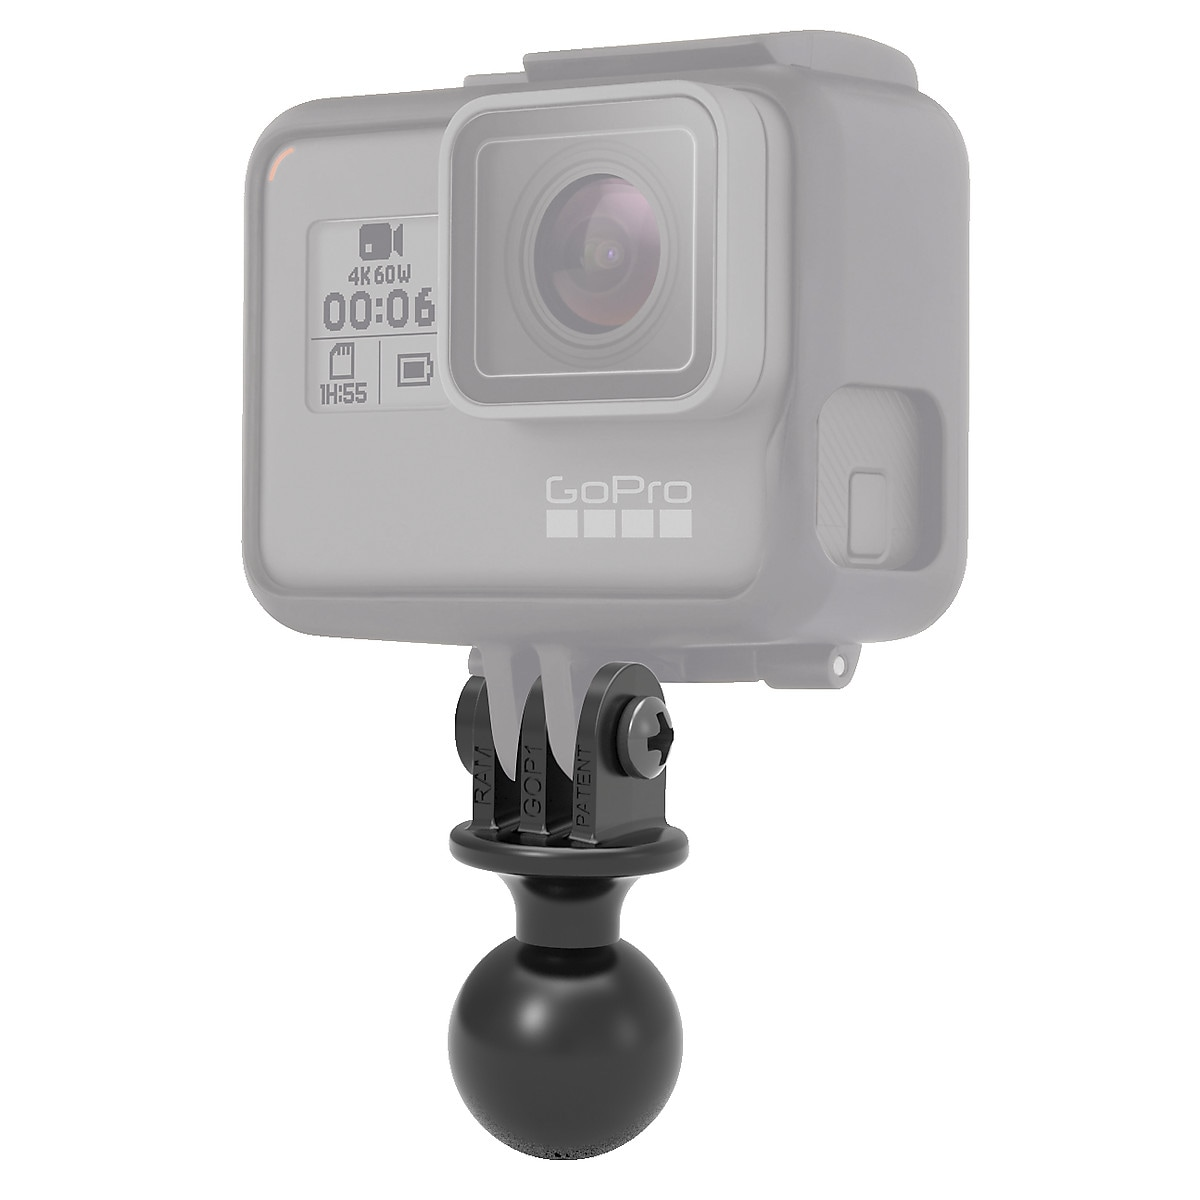 Sovitin GoPro-actionkameralle, Ram Mounts